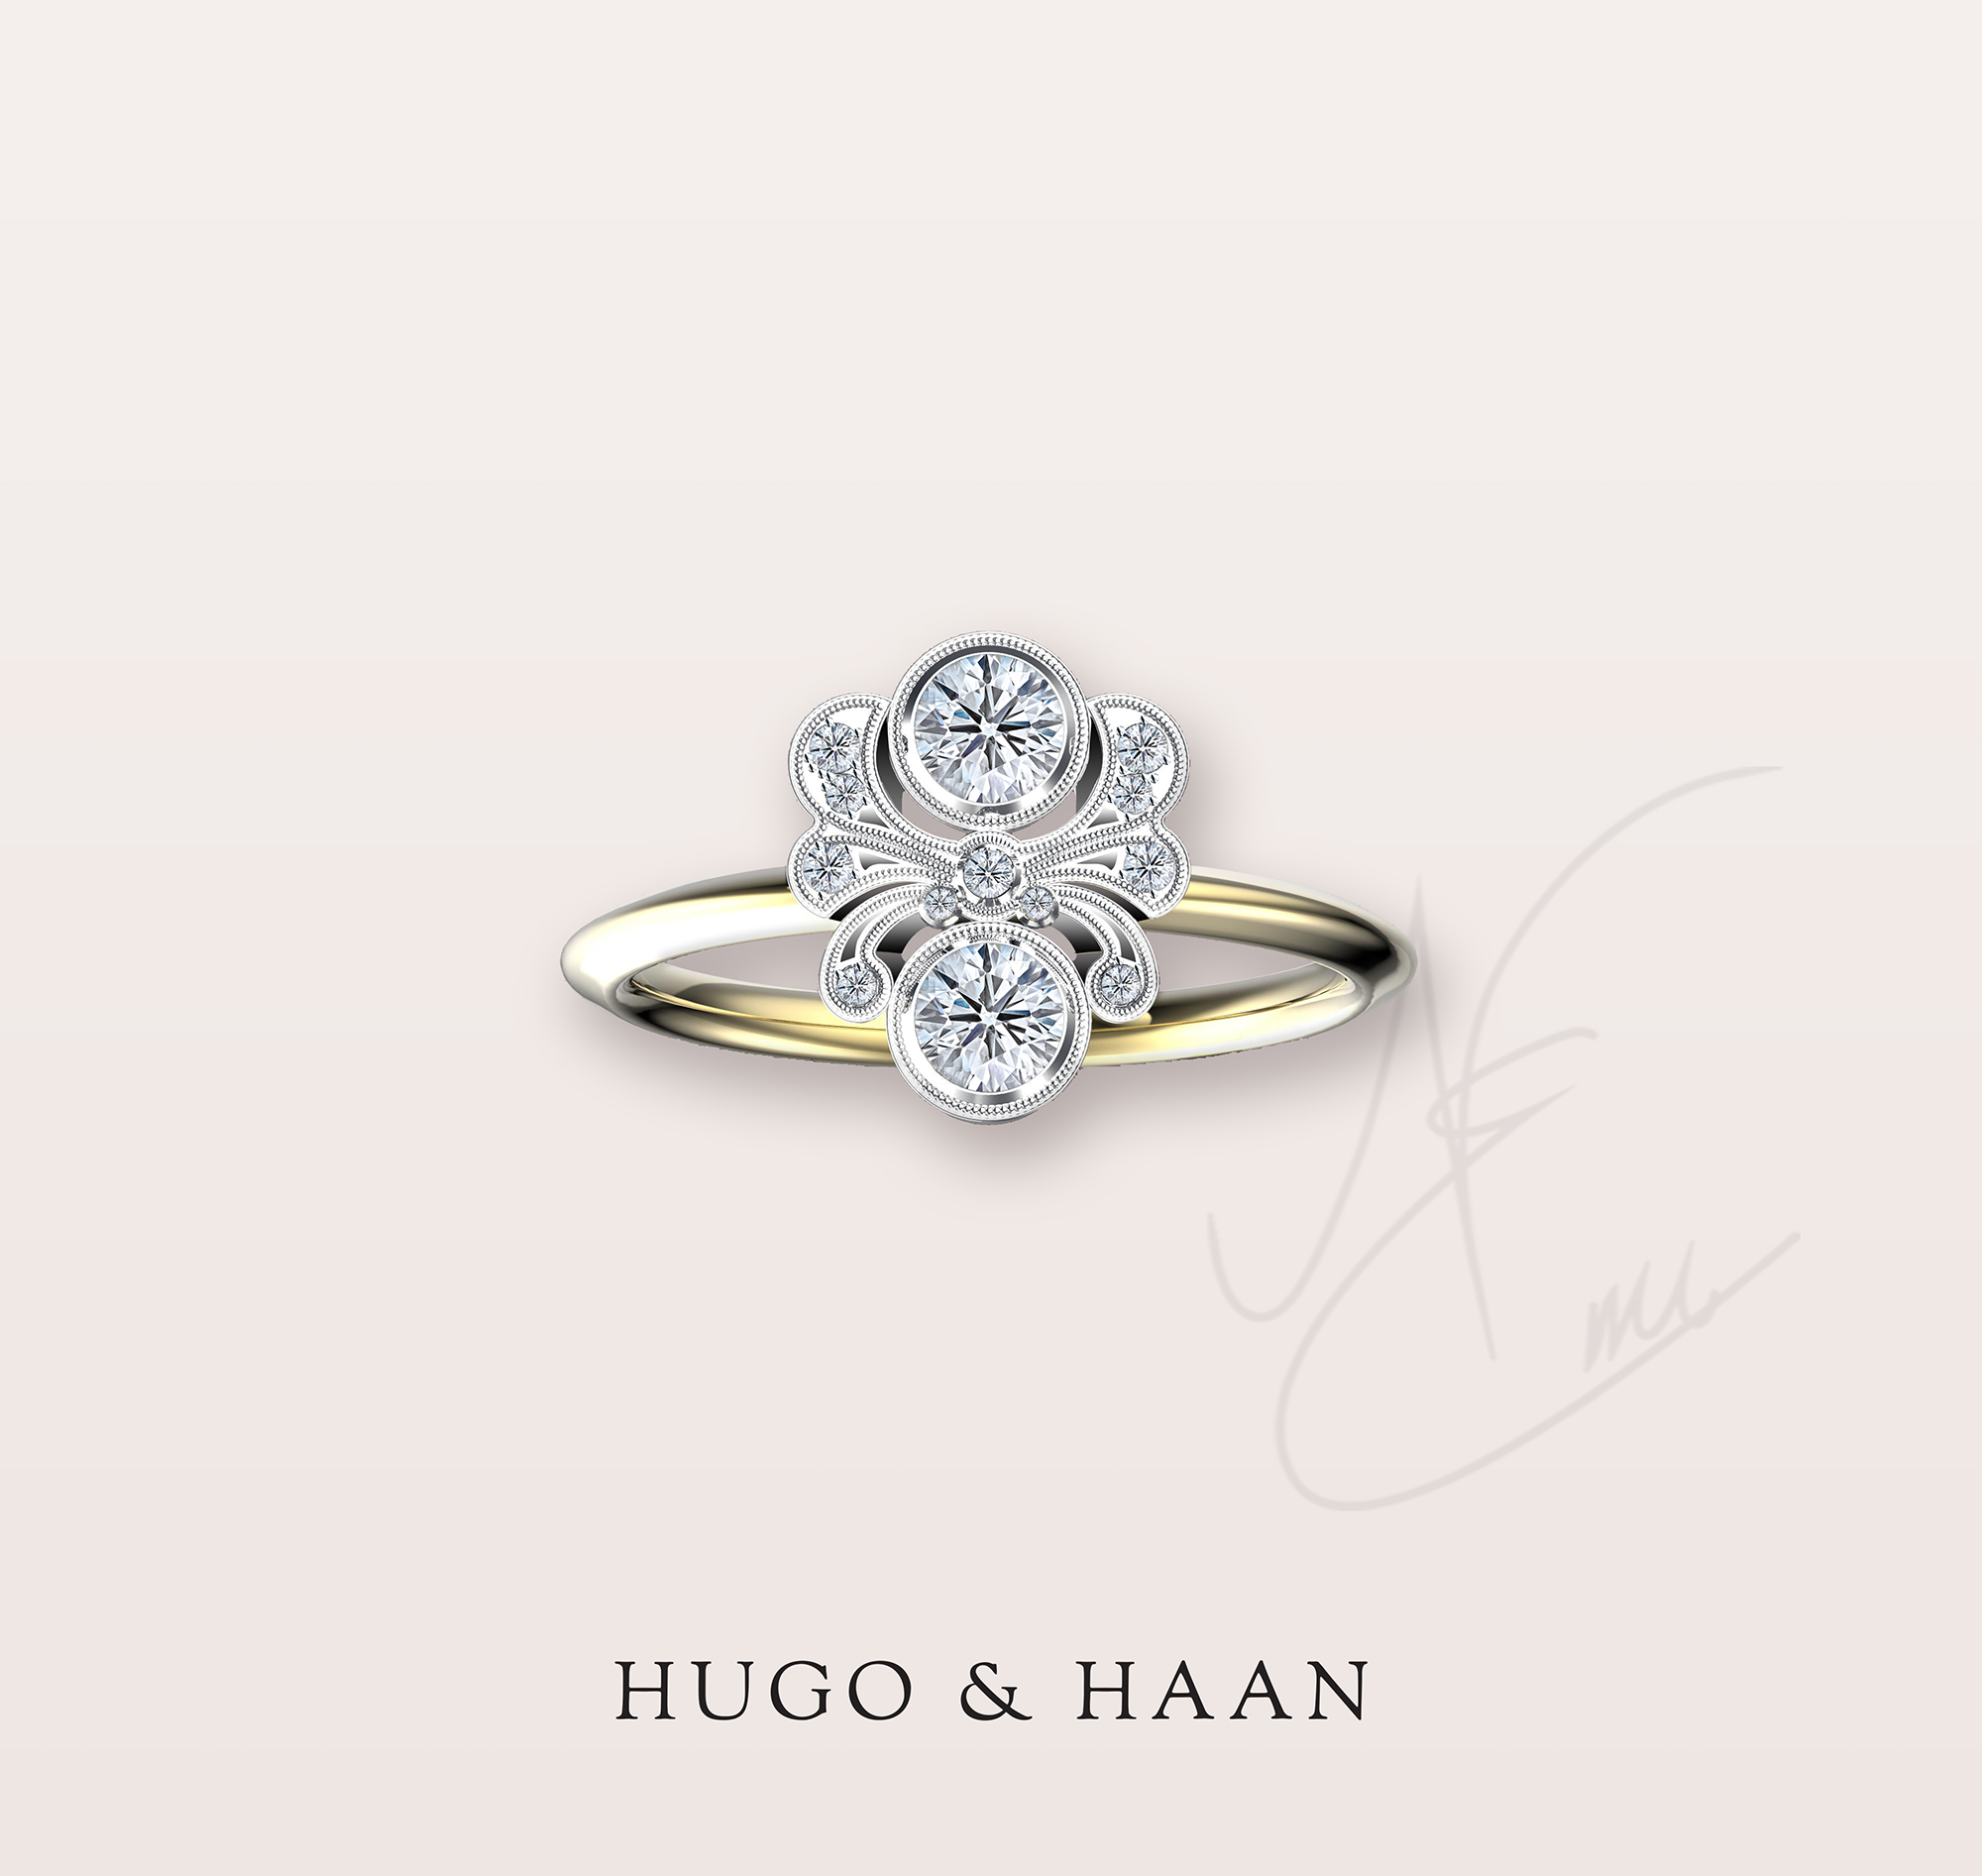 THE VINTAGE - Floral inspired and dainty, this rings is for the romantic brides out there.